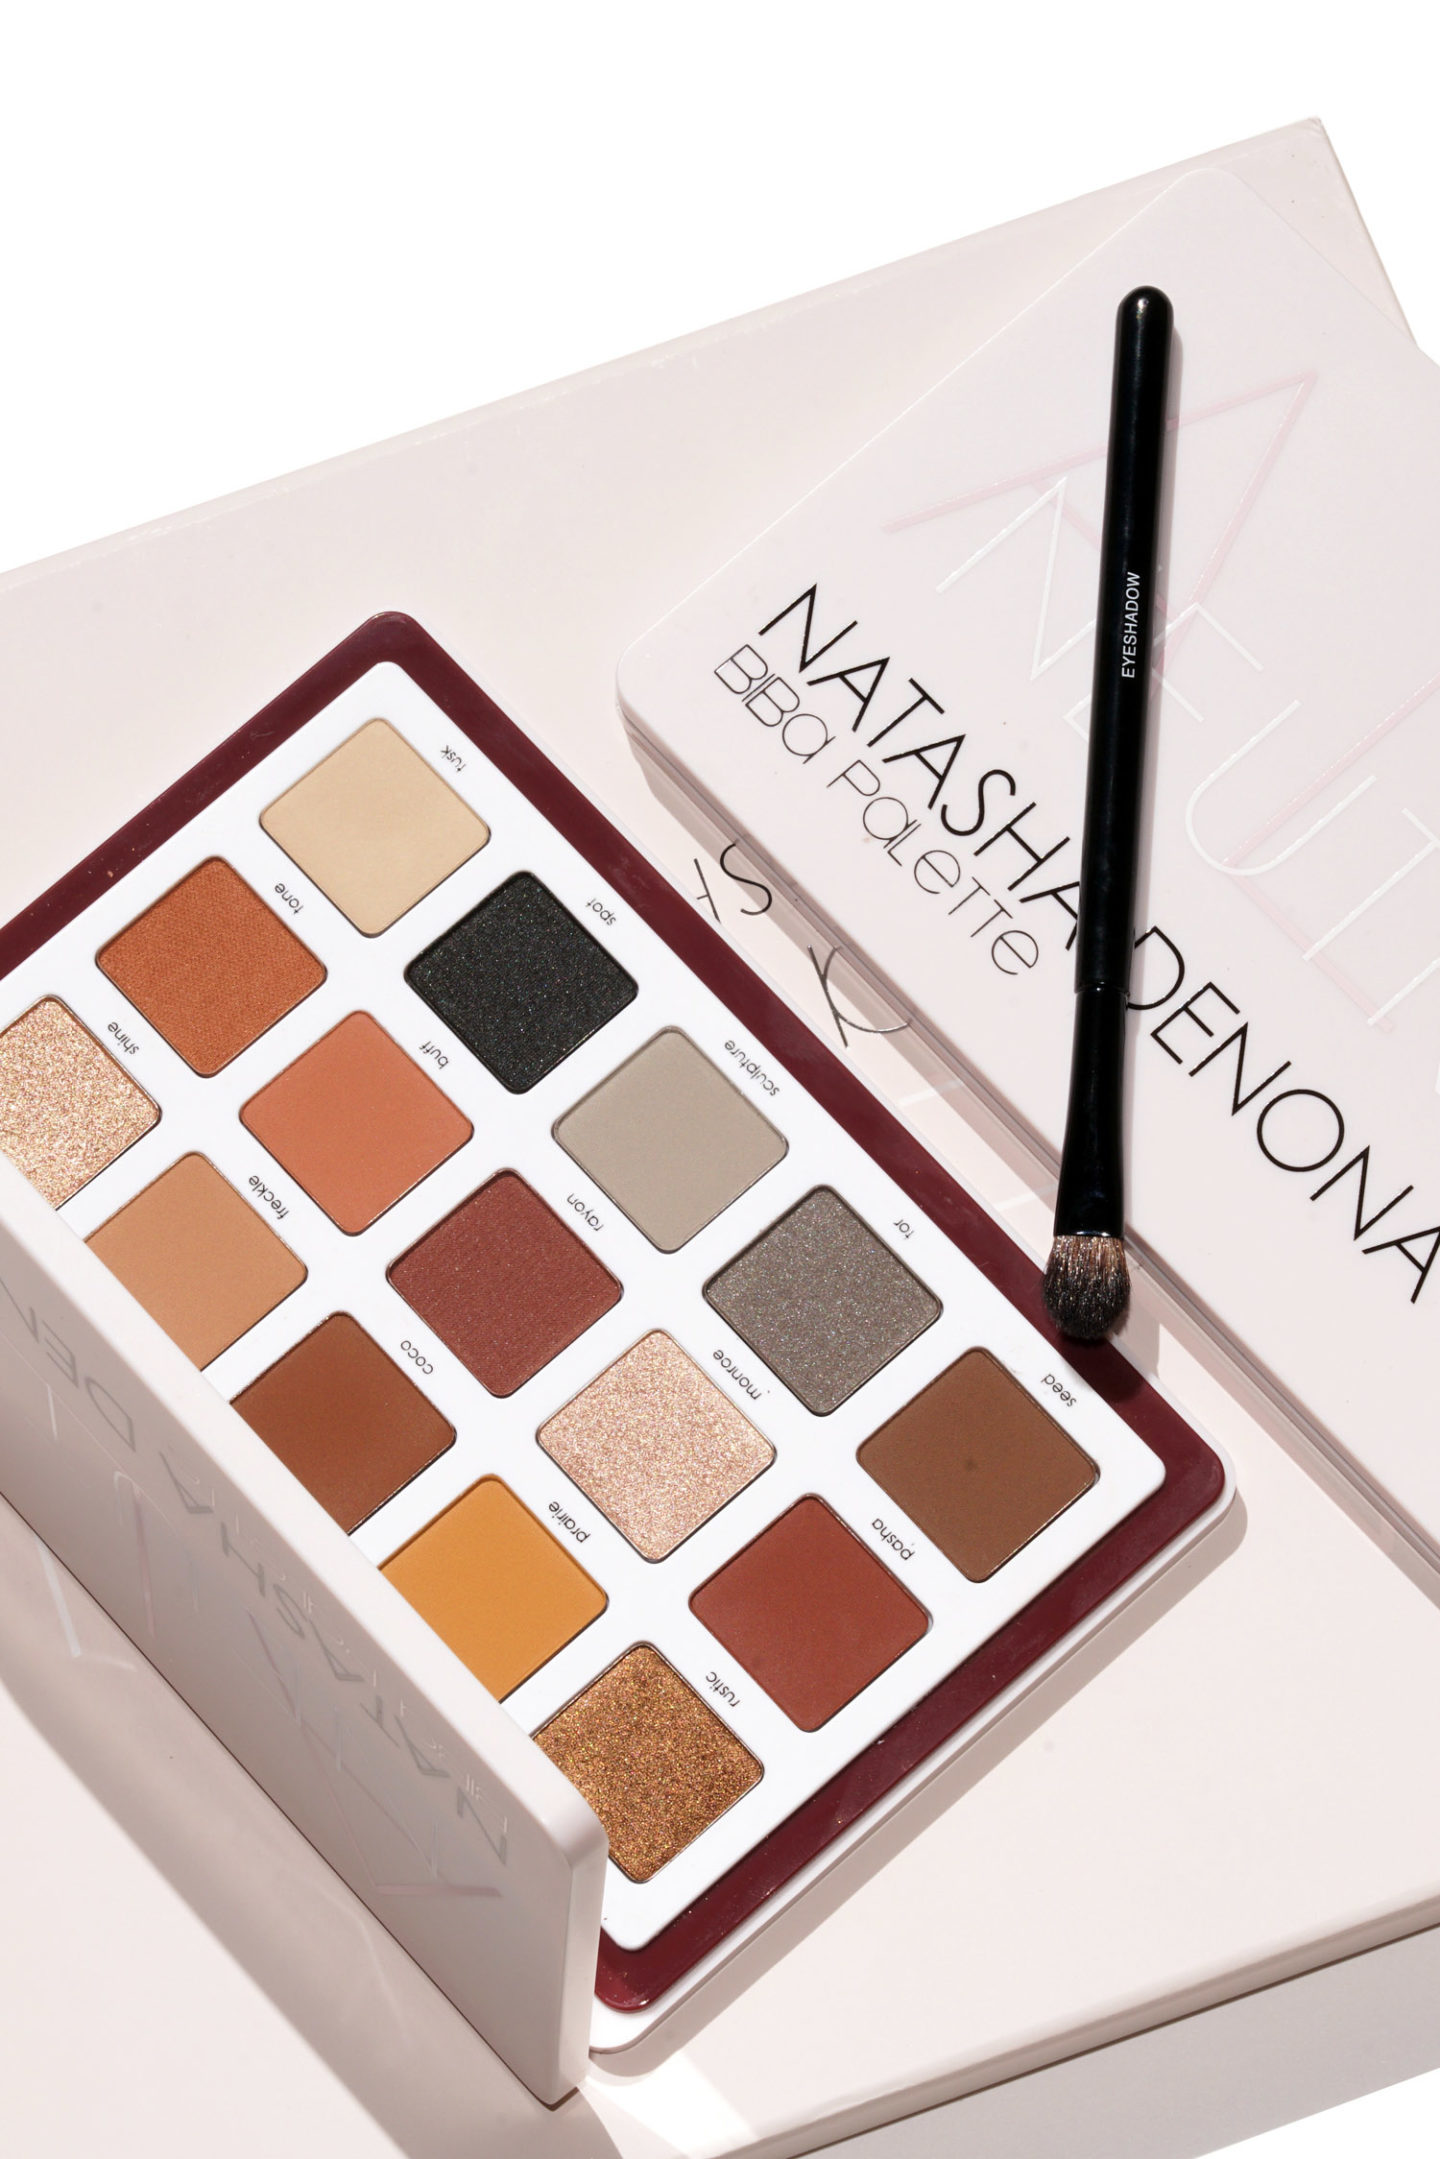 Revue de la palette de paupières Eyeshadow de Natasha Denona Biba et du nuancier via The Beauty Look Book